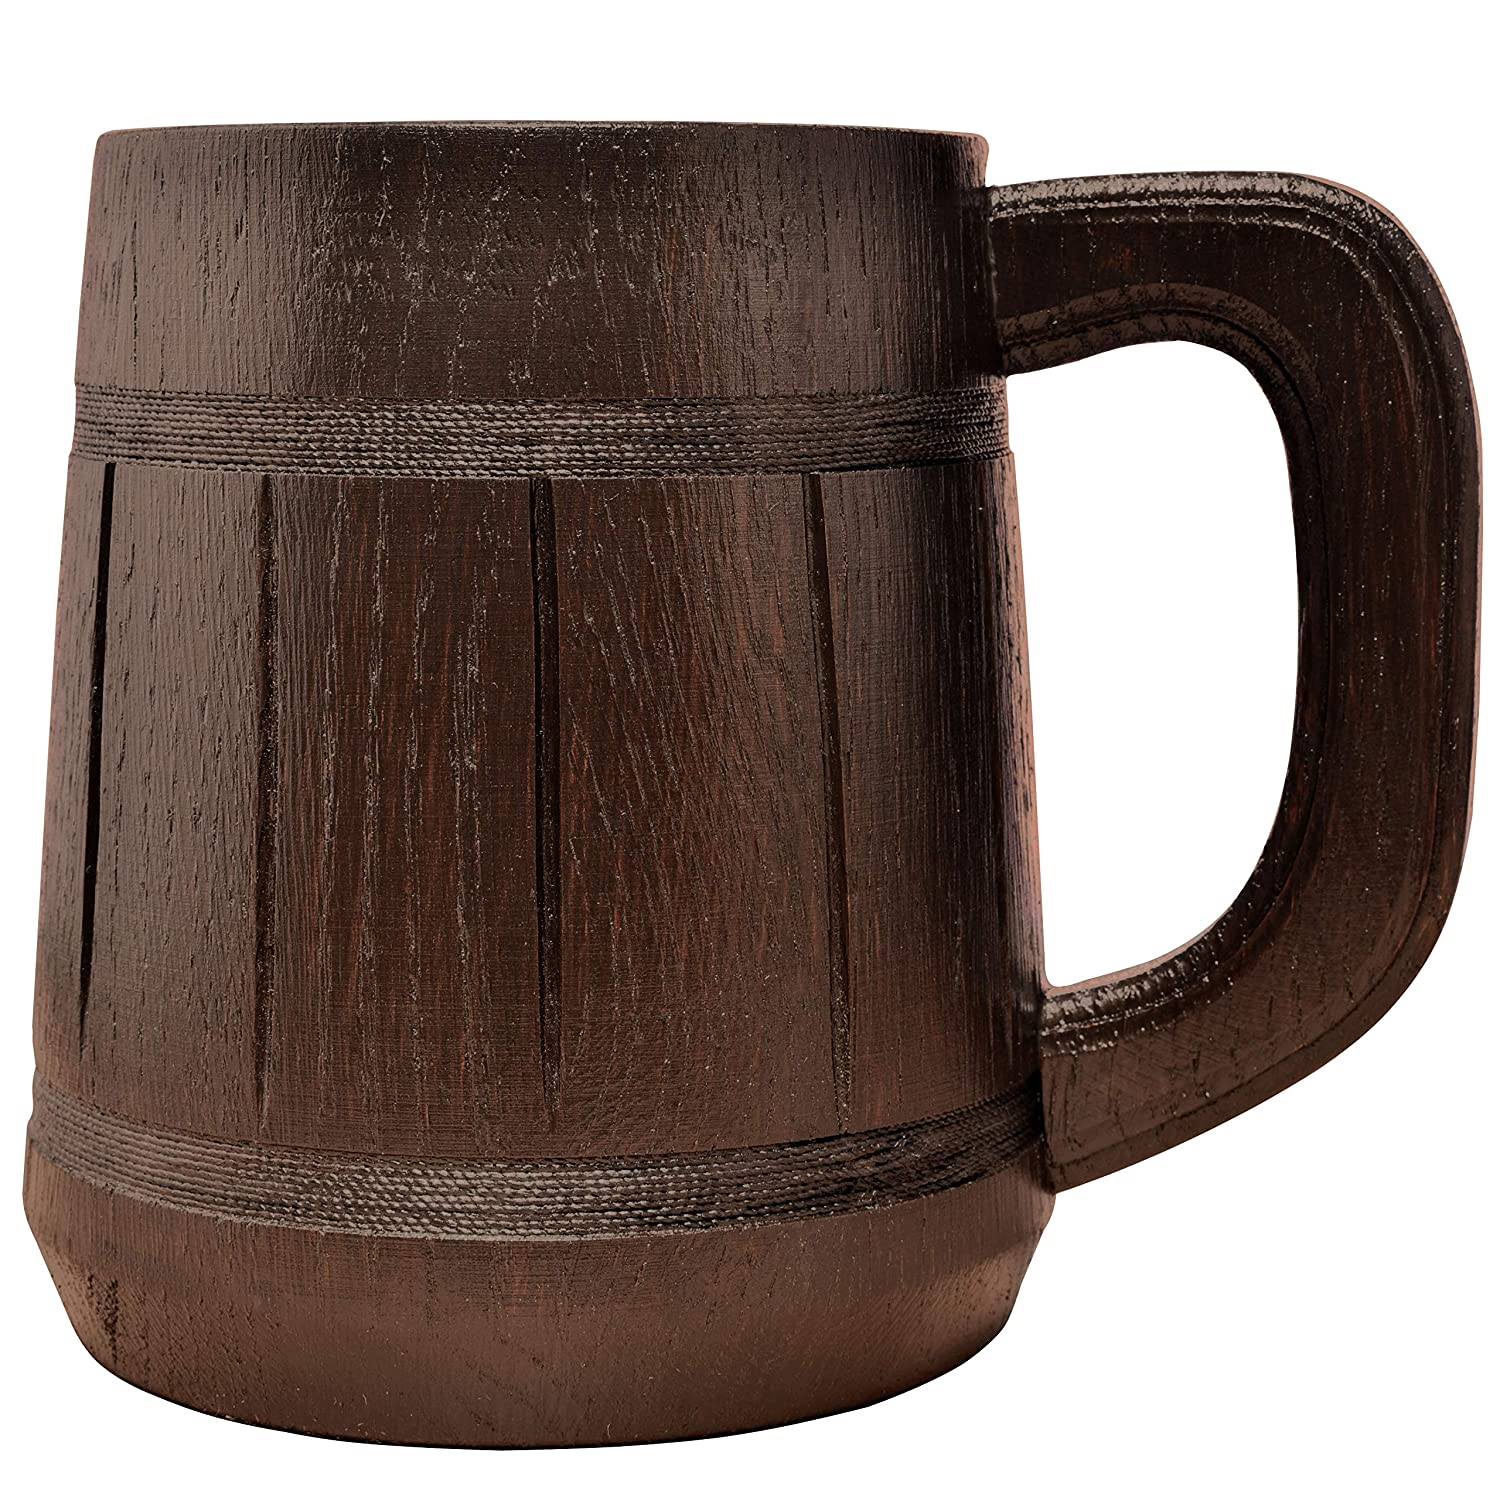 Wooden Beer Mug Men. Craft IPA Drinking Cup. Pint Wood Stein. Viking Ale Mead Dad Tankard Handle. Funny Father Day Wine Tumbler, Birthday Anniversary Gift. Cute Man Cave Rustic Decor, Party Accessory